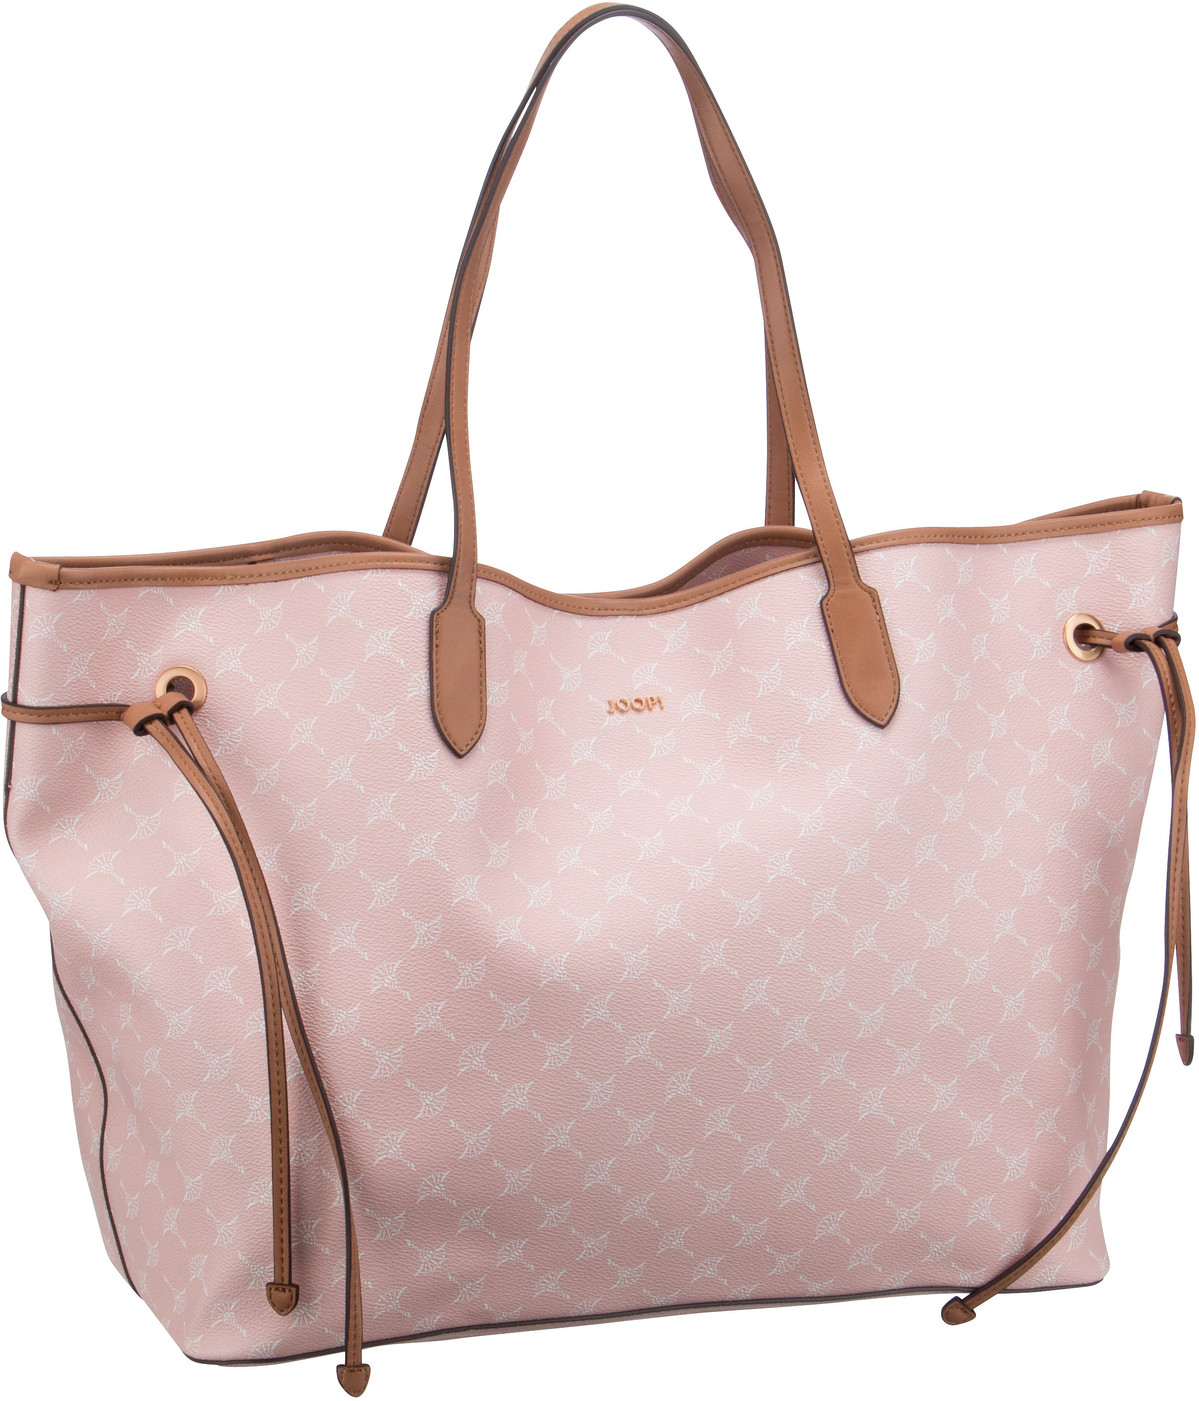 Handtasche Lara Cortina Shopper Large Light Pink